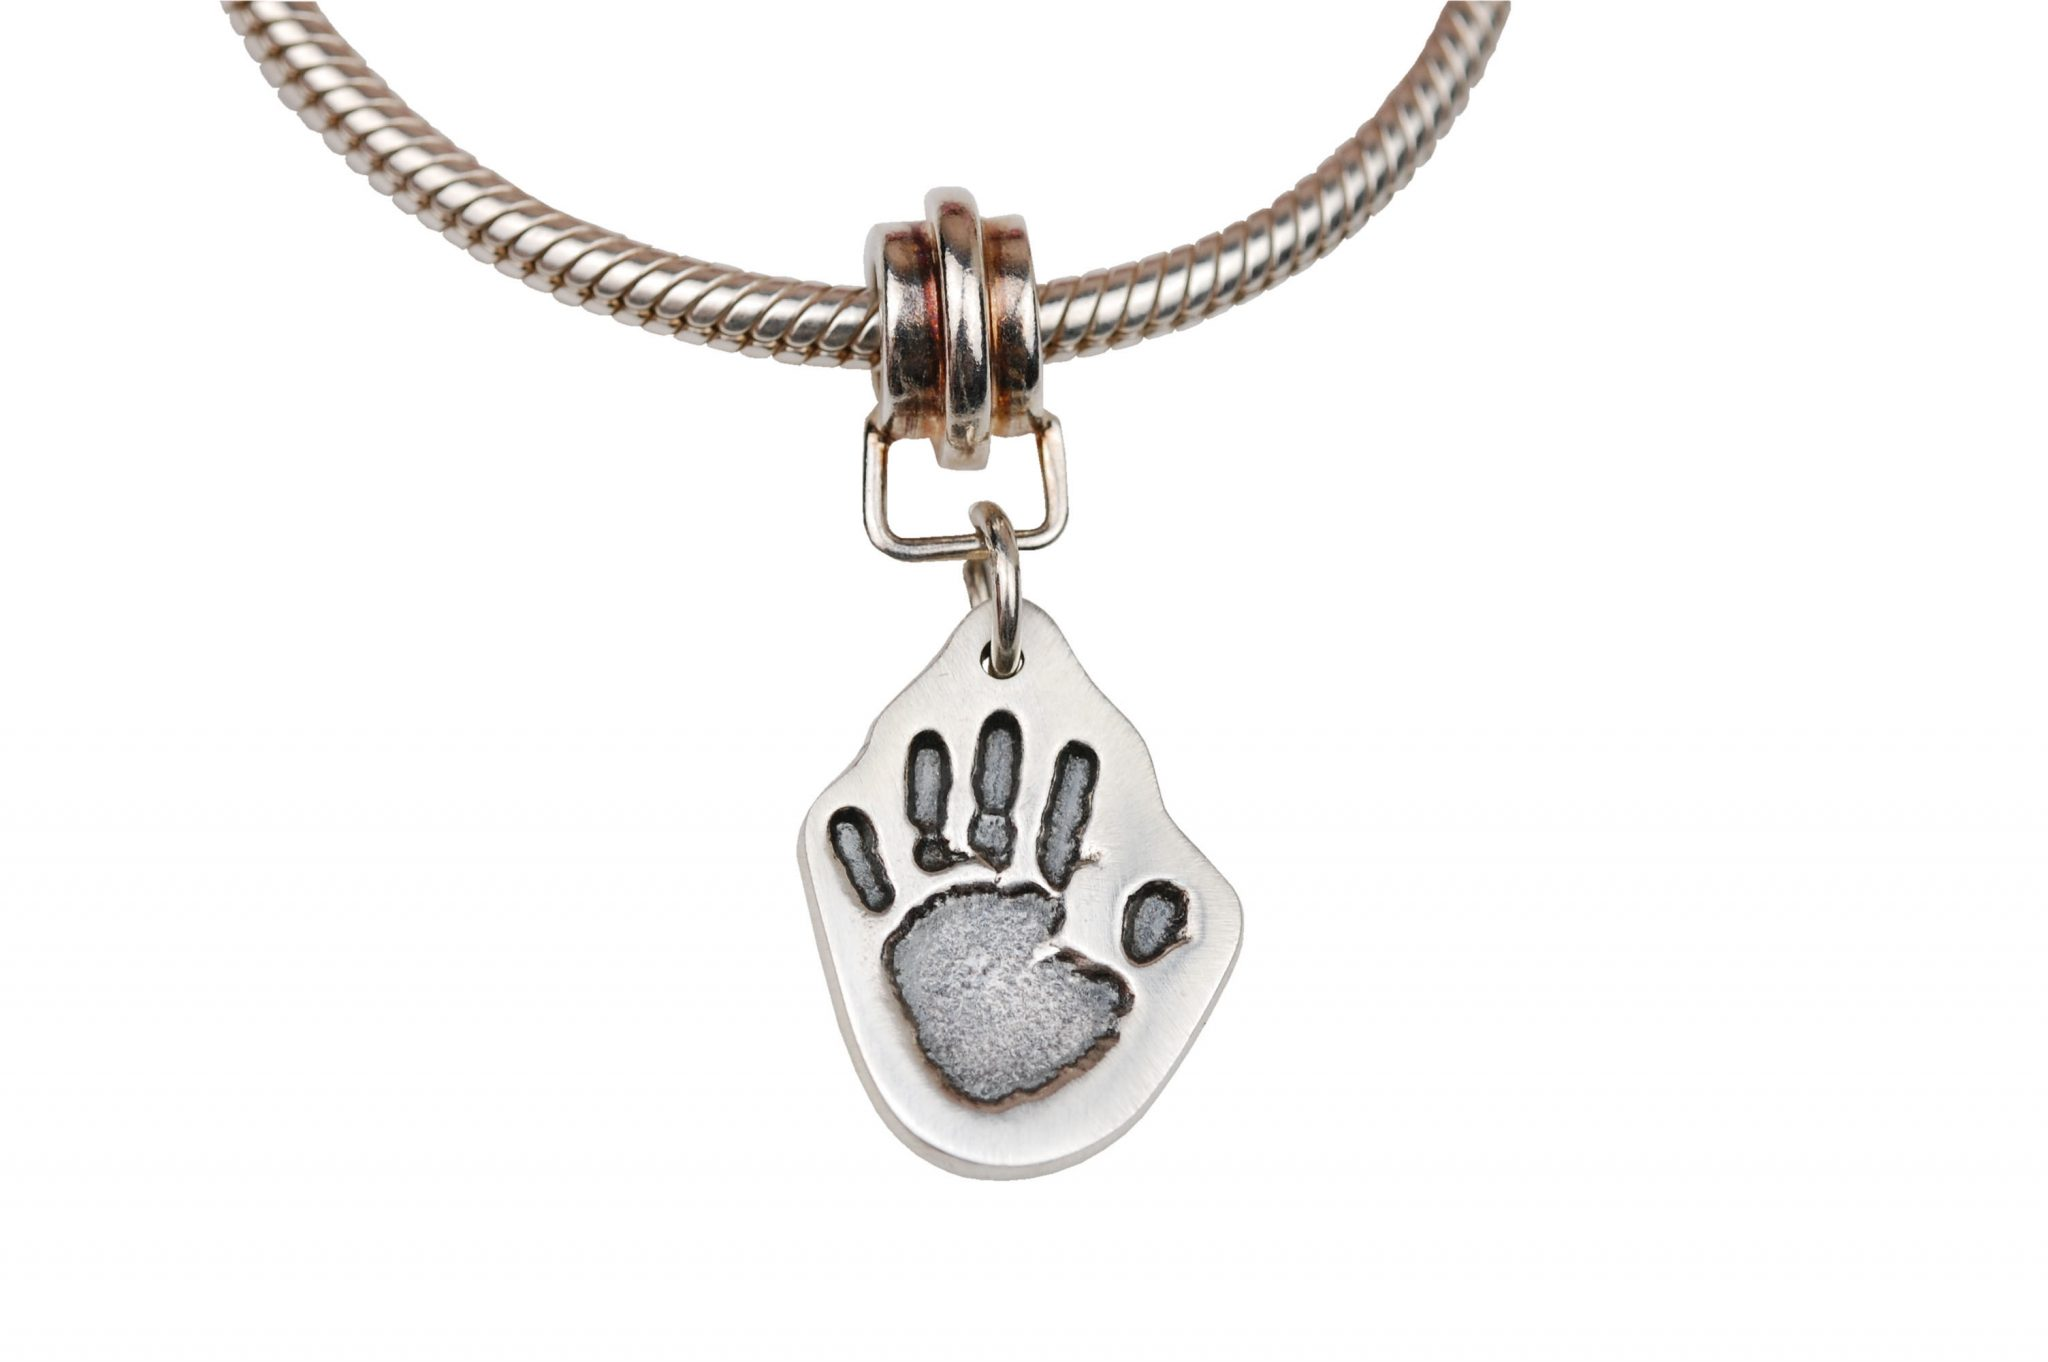 Small handprint cut out charm and charm carrier